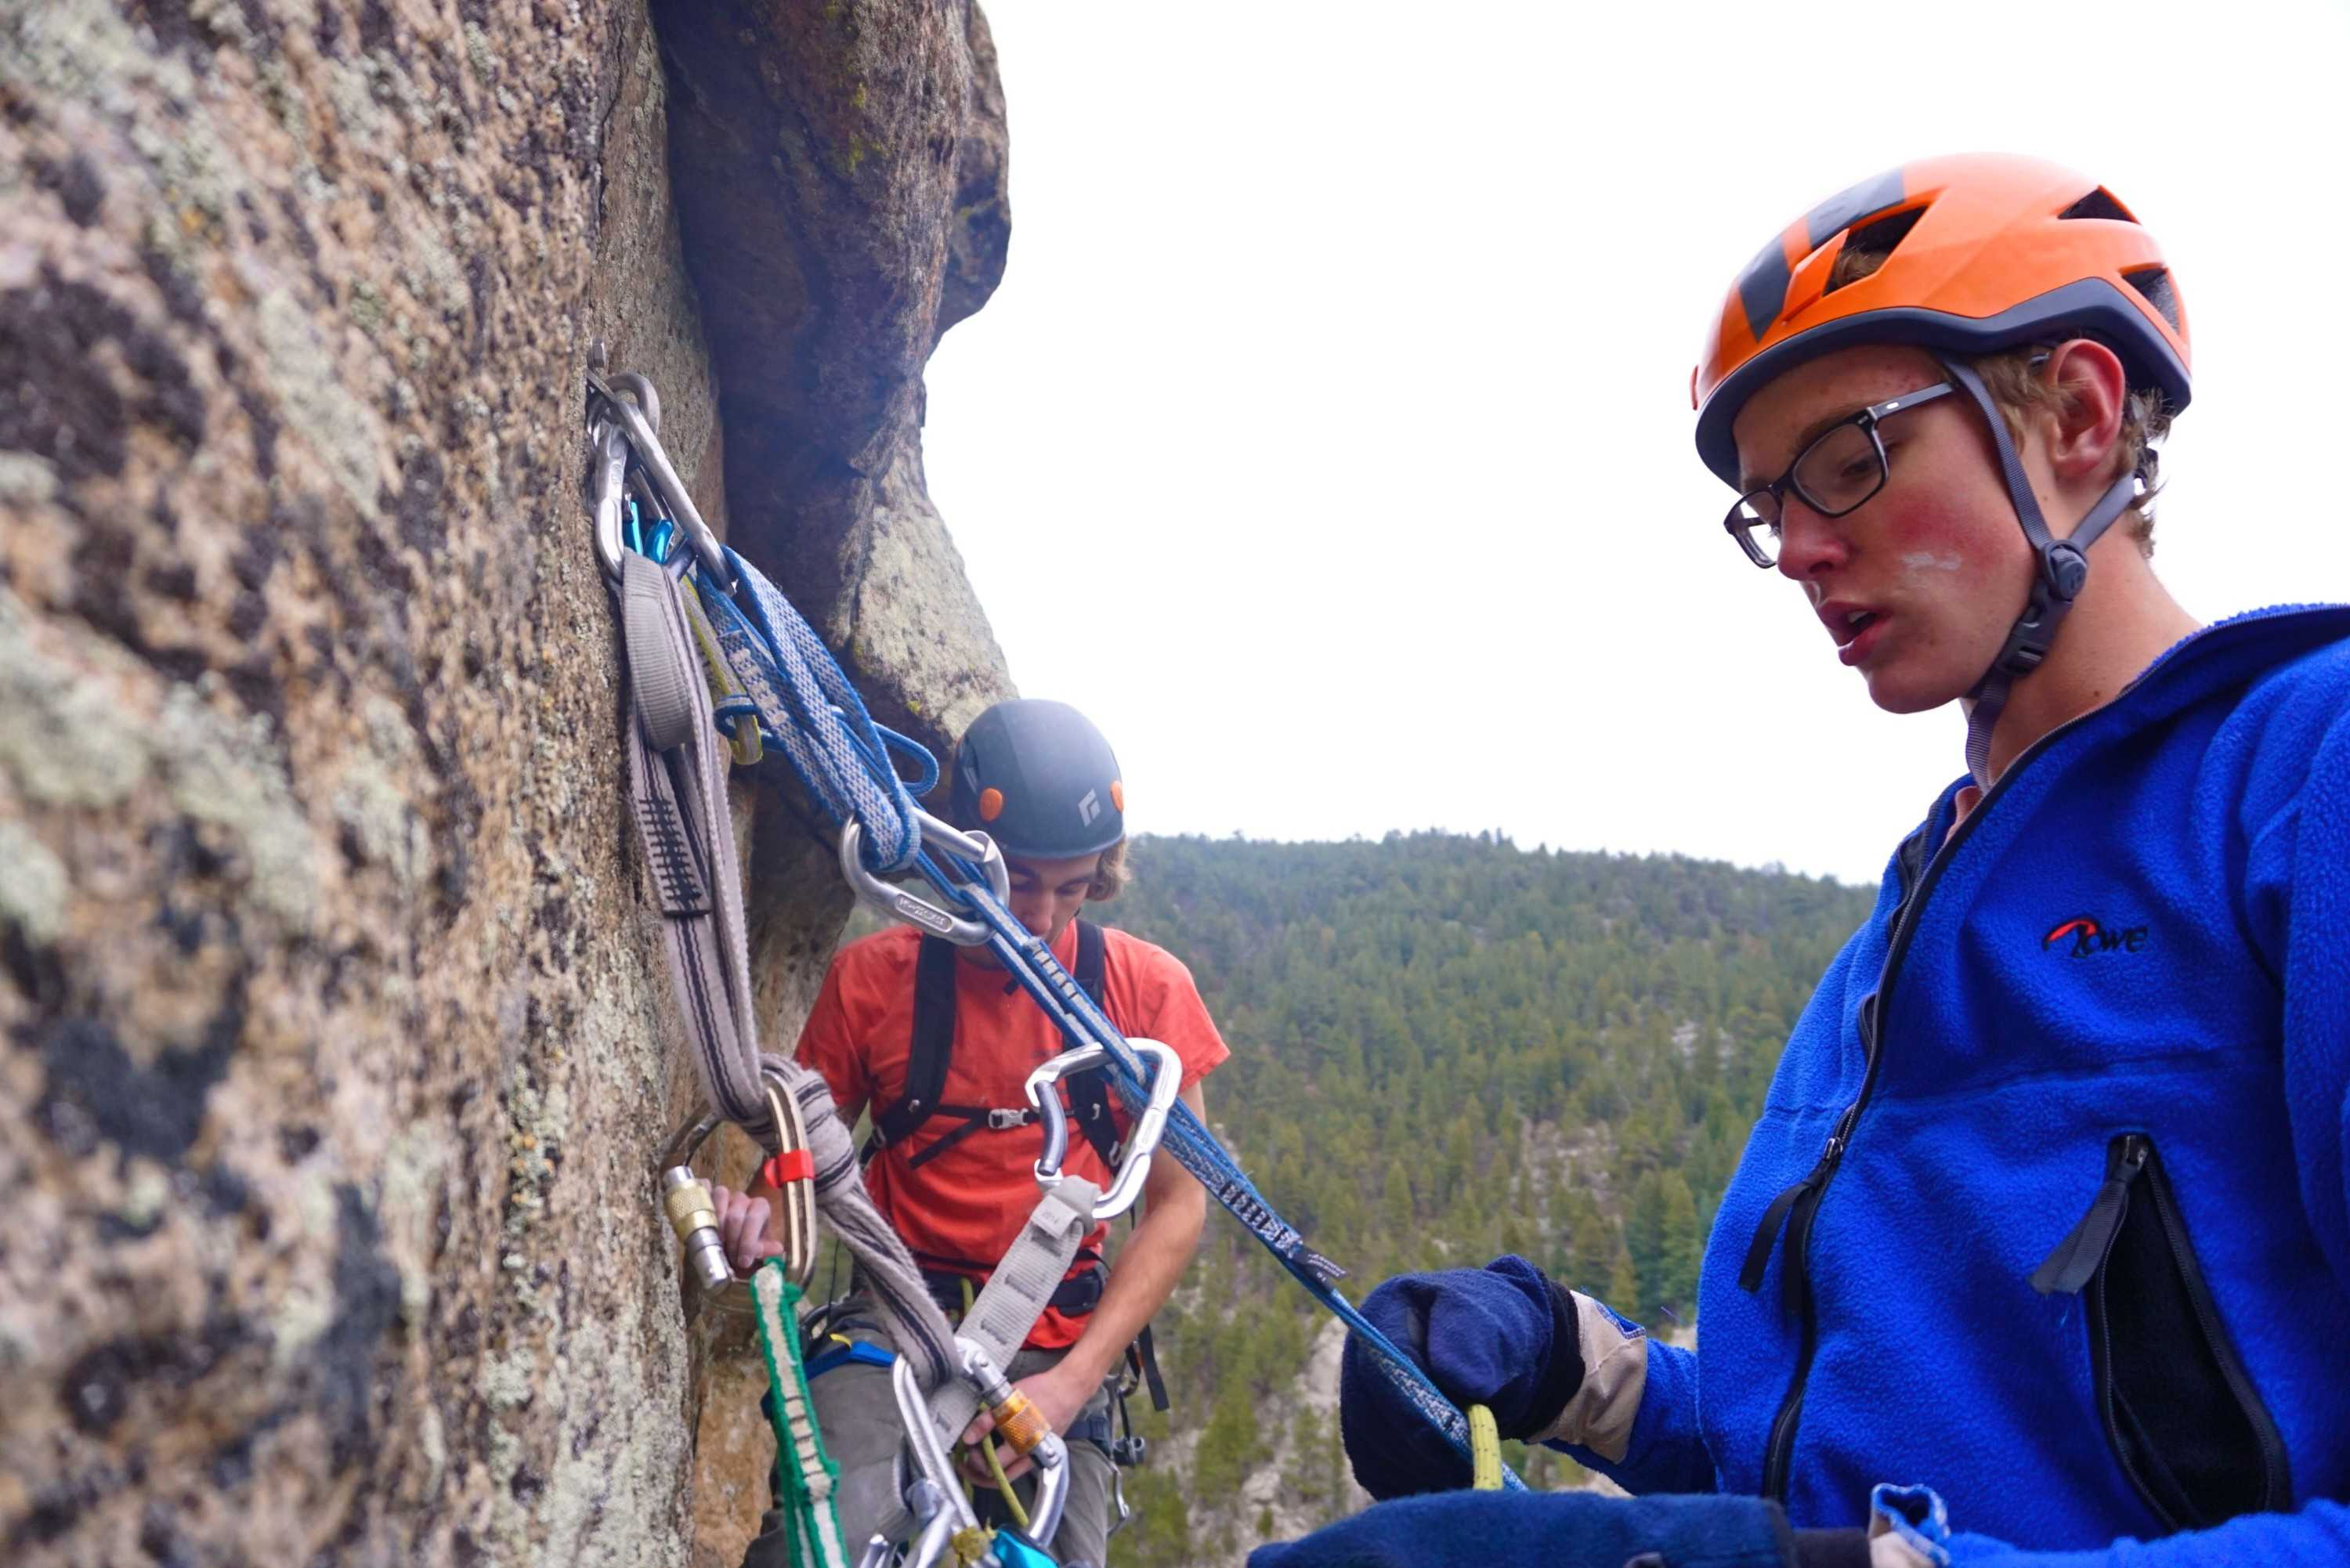 Luke Negley and Jack McConnell Climbing in Boulder Canyon